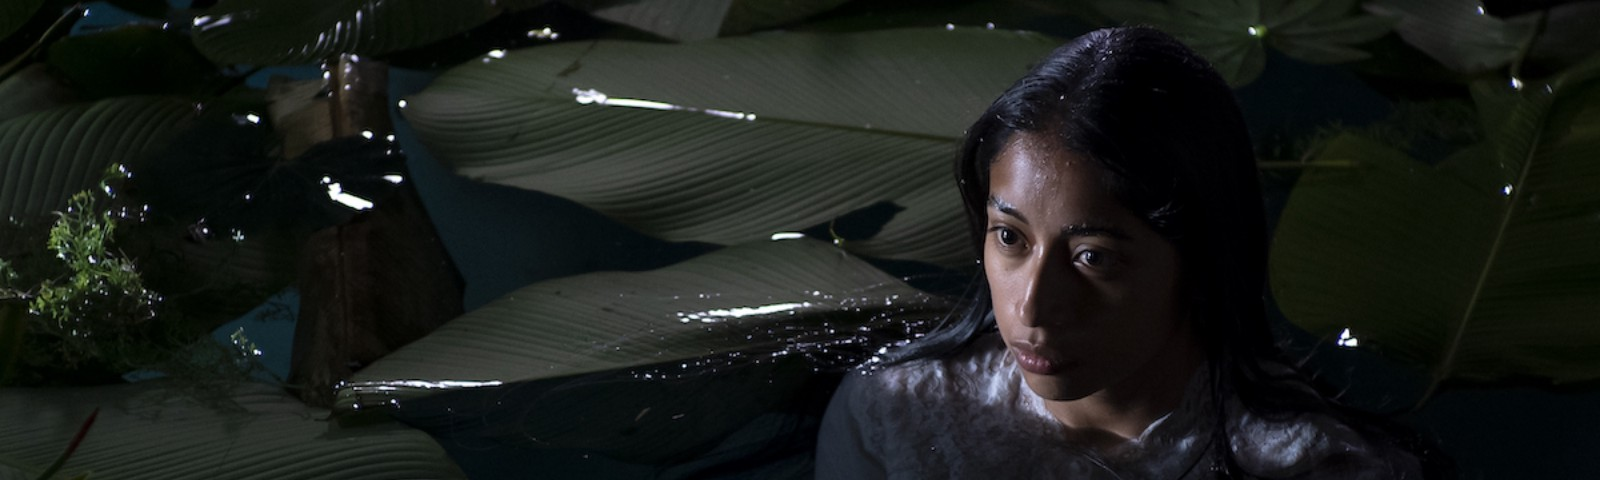 The character Alma, up to her neck in water with huge lily pads on it, at night.